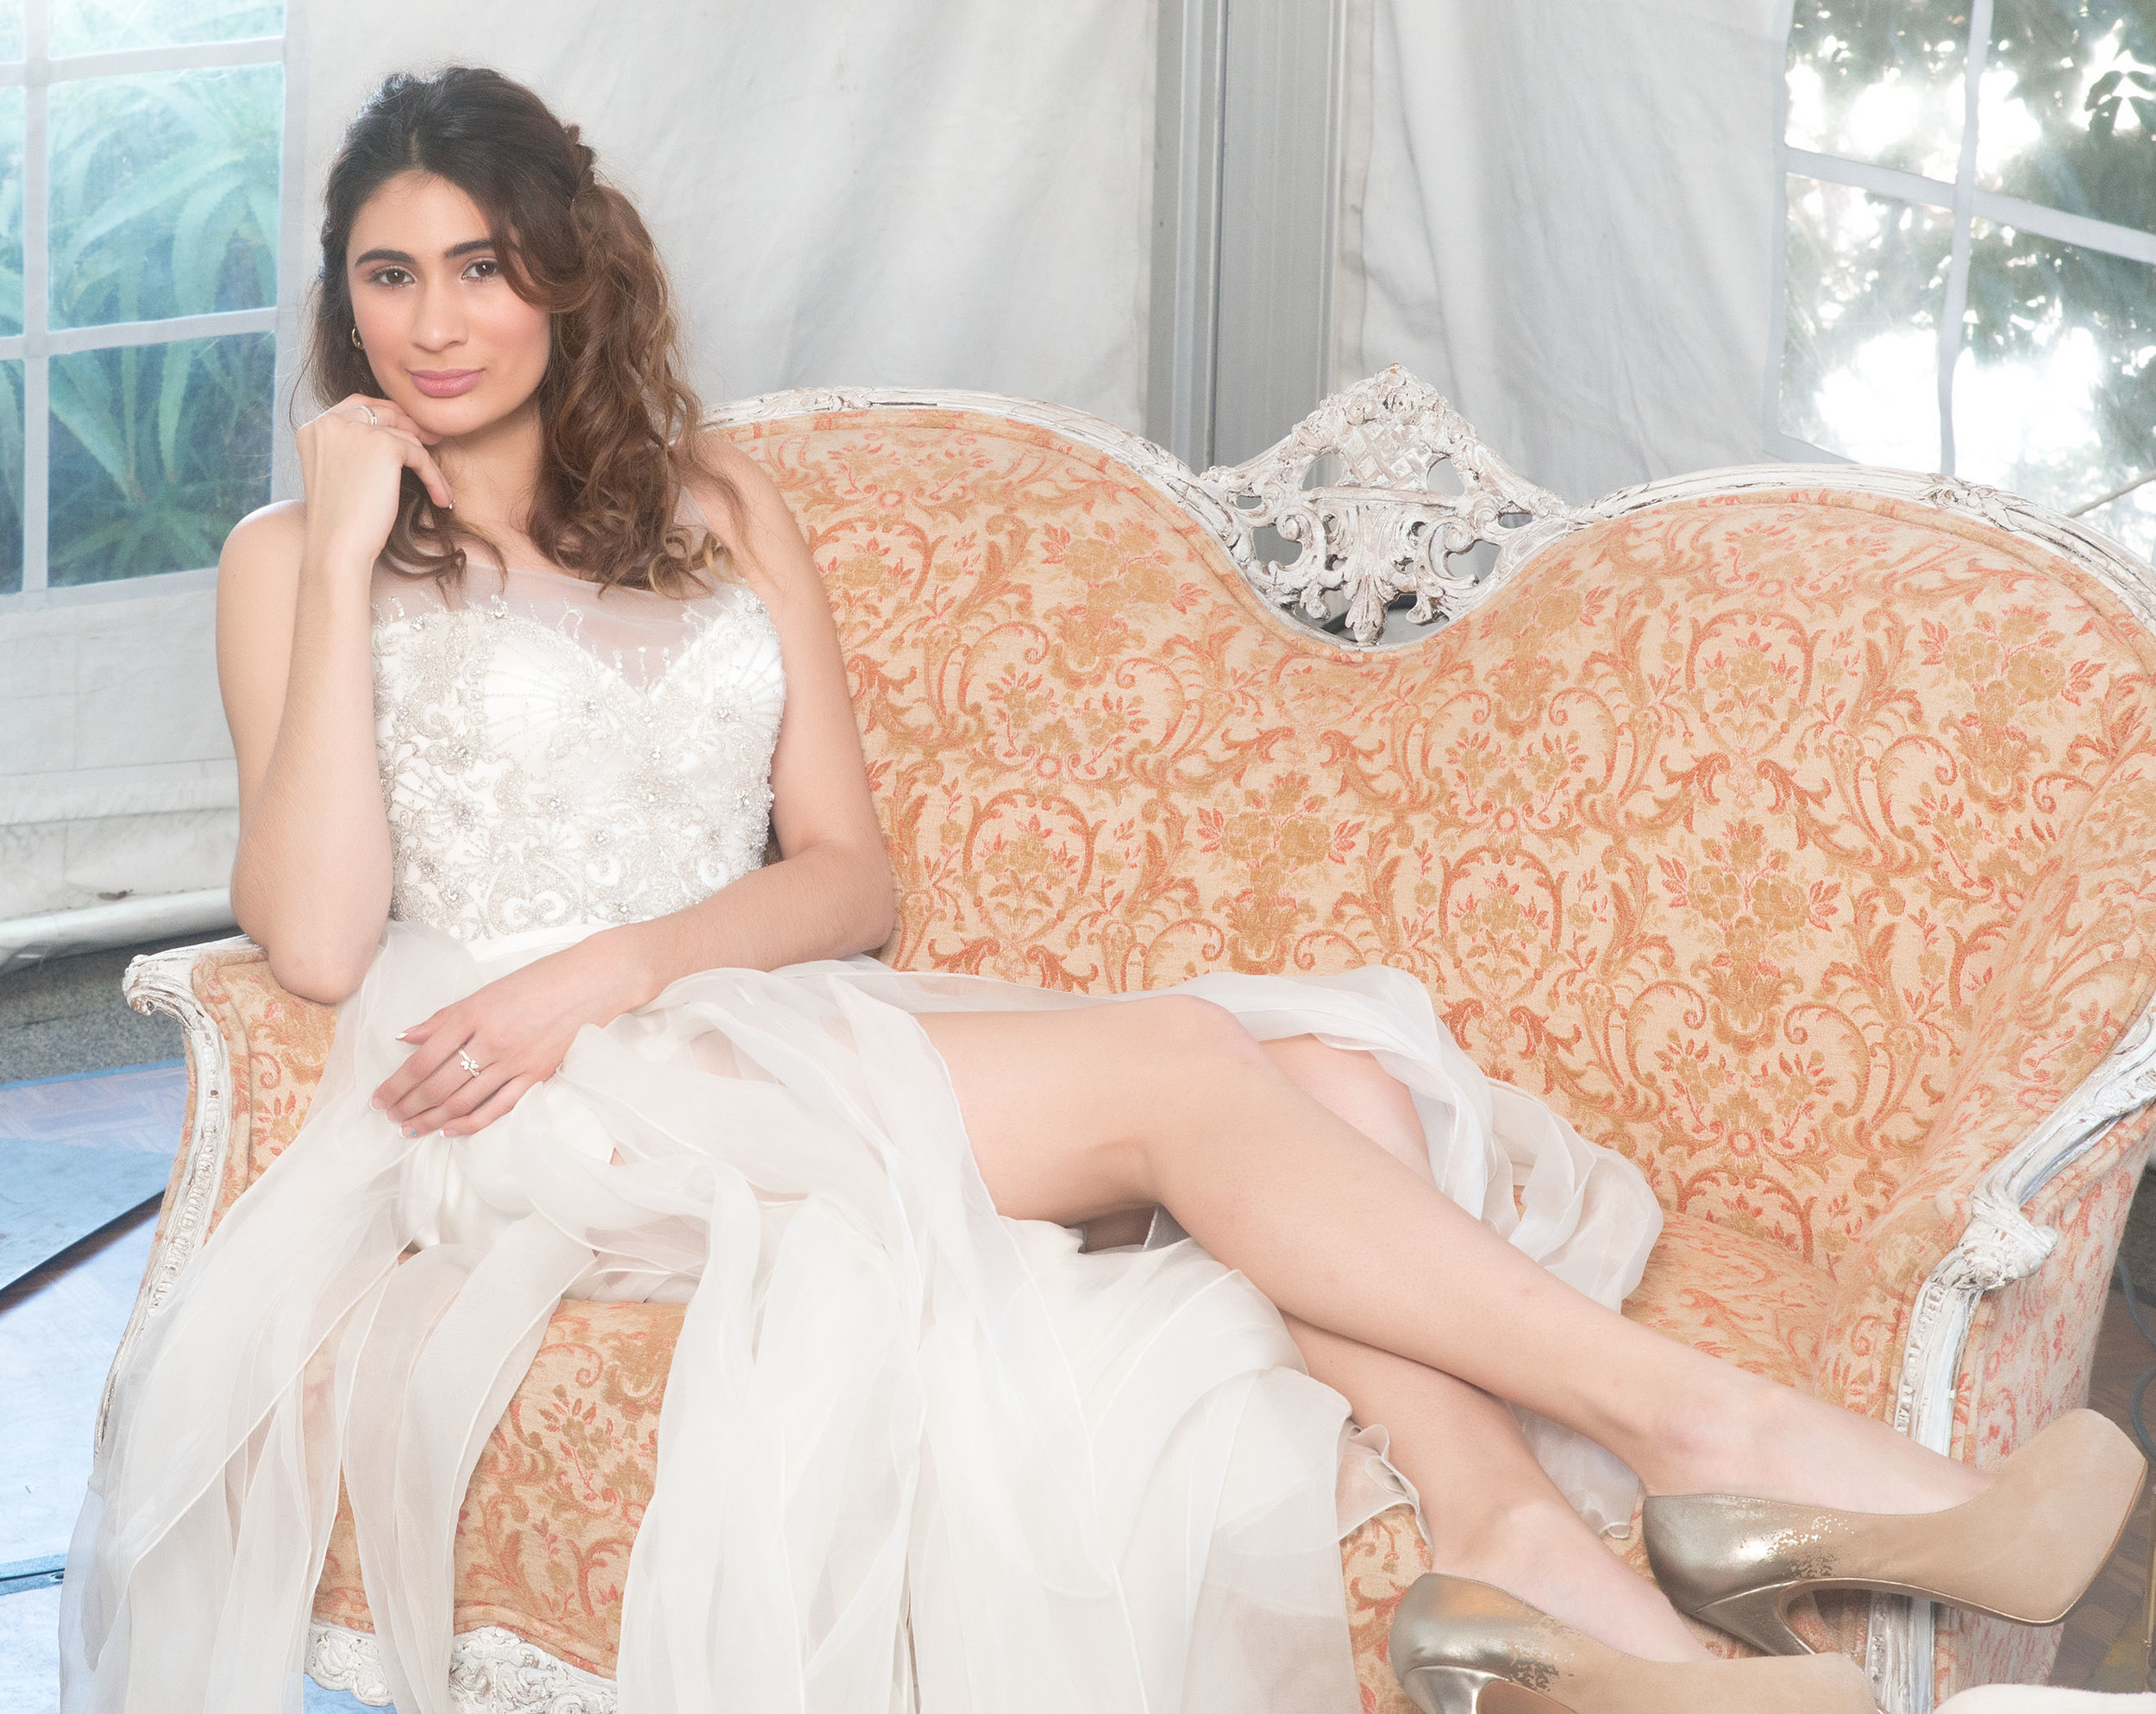 Nicole Miller Bridal Gowns The Perfect Style For The Lauren Sharon Designer Fashion Lounge,Pink And Gold Wedding Dress